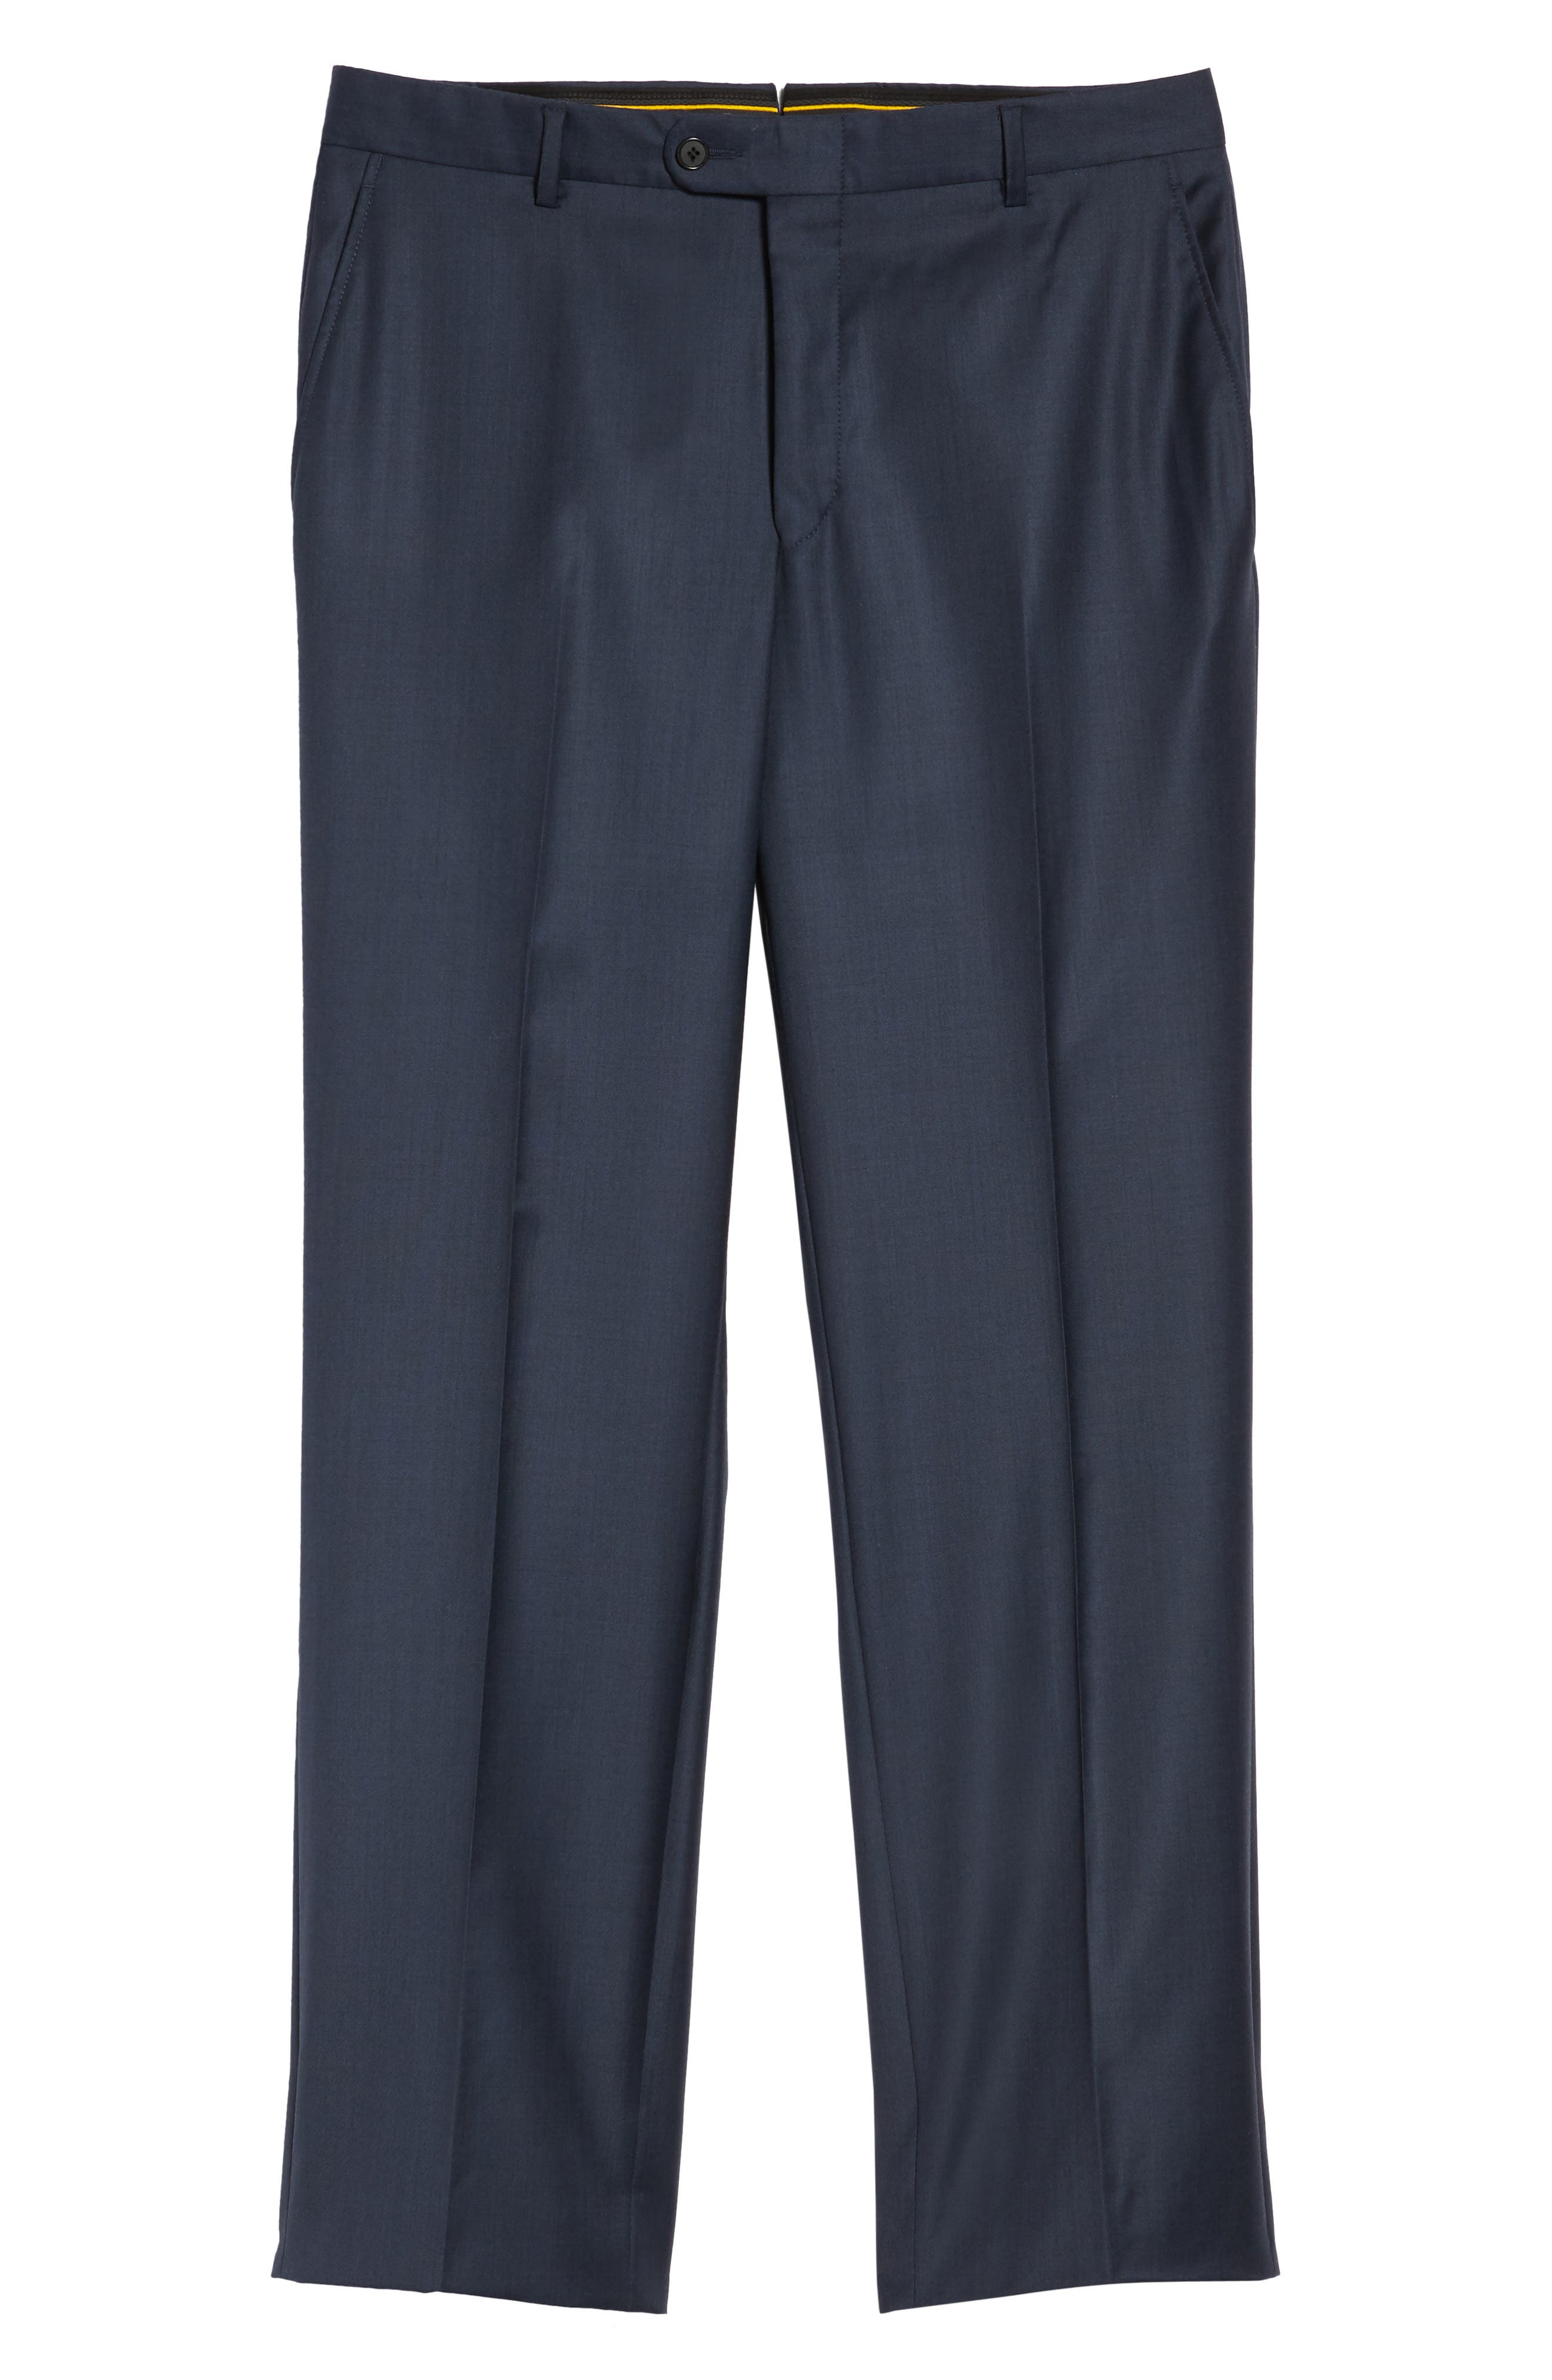 Classic B Fit Flat Front Solid Wool Trousers,                             Alternate thumbnail 6, color,                             Navy Sharkskin